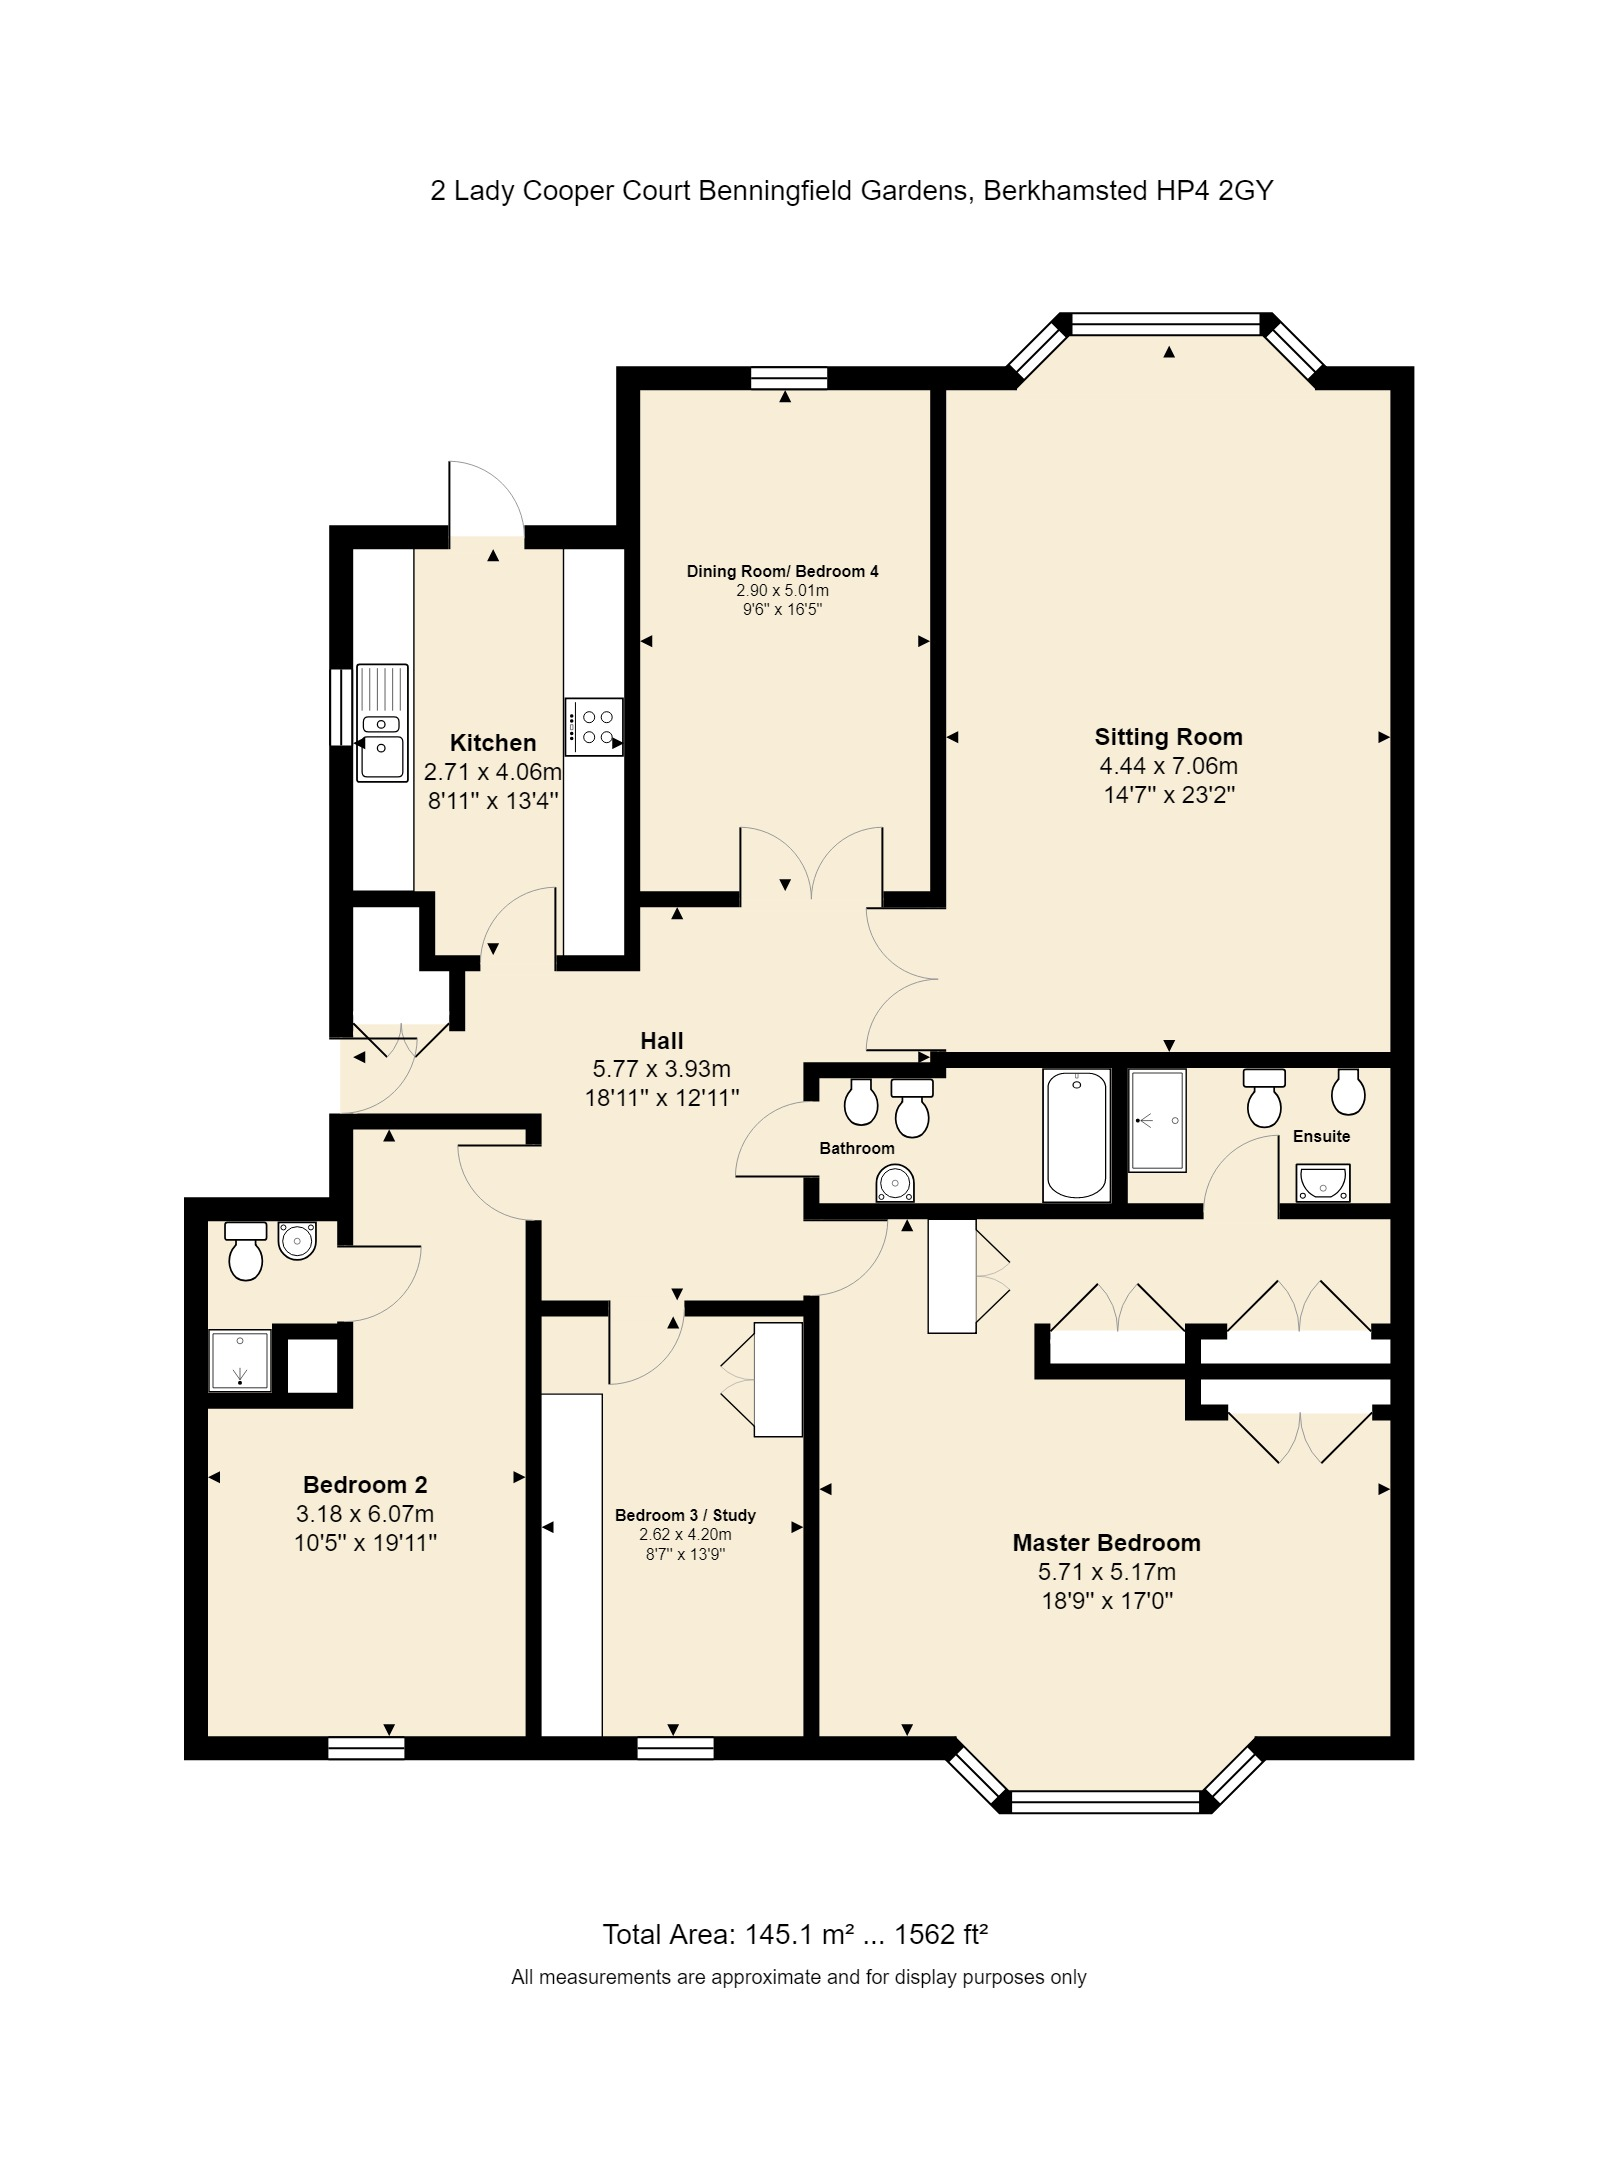 2 Lady Cooper Court Floorplan